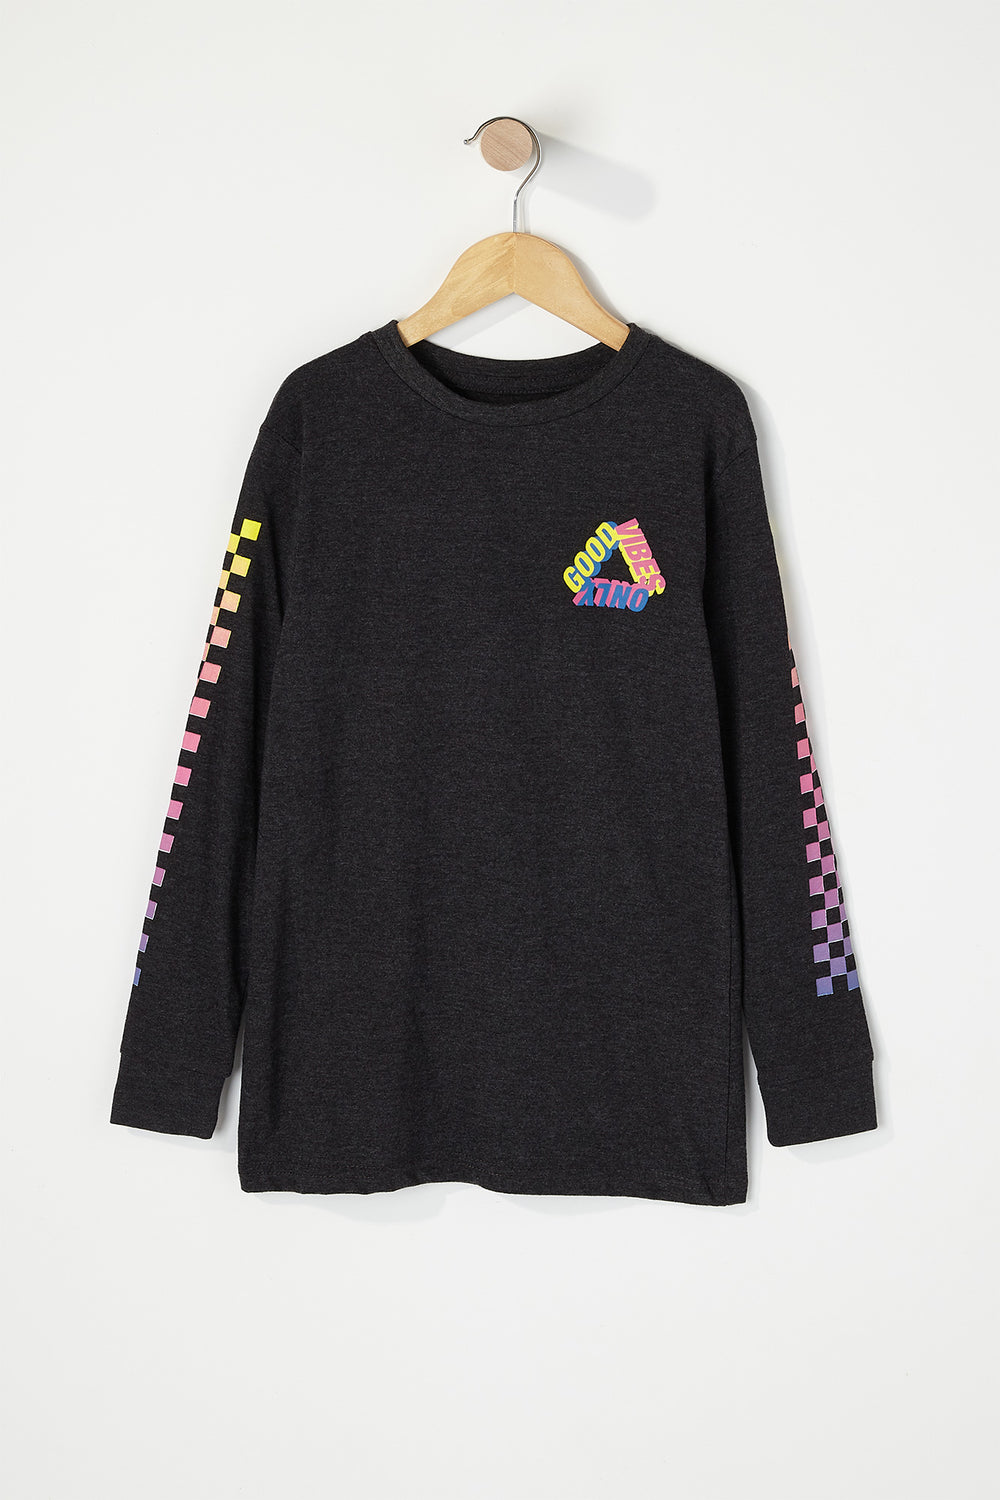 Boys Good Vibes Graphic Long Sleeve Charcoal